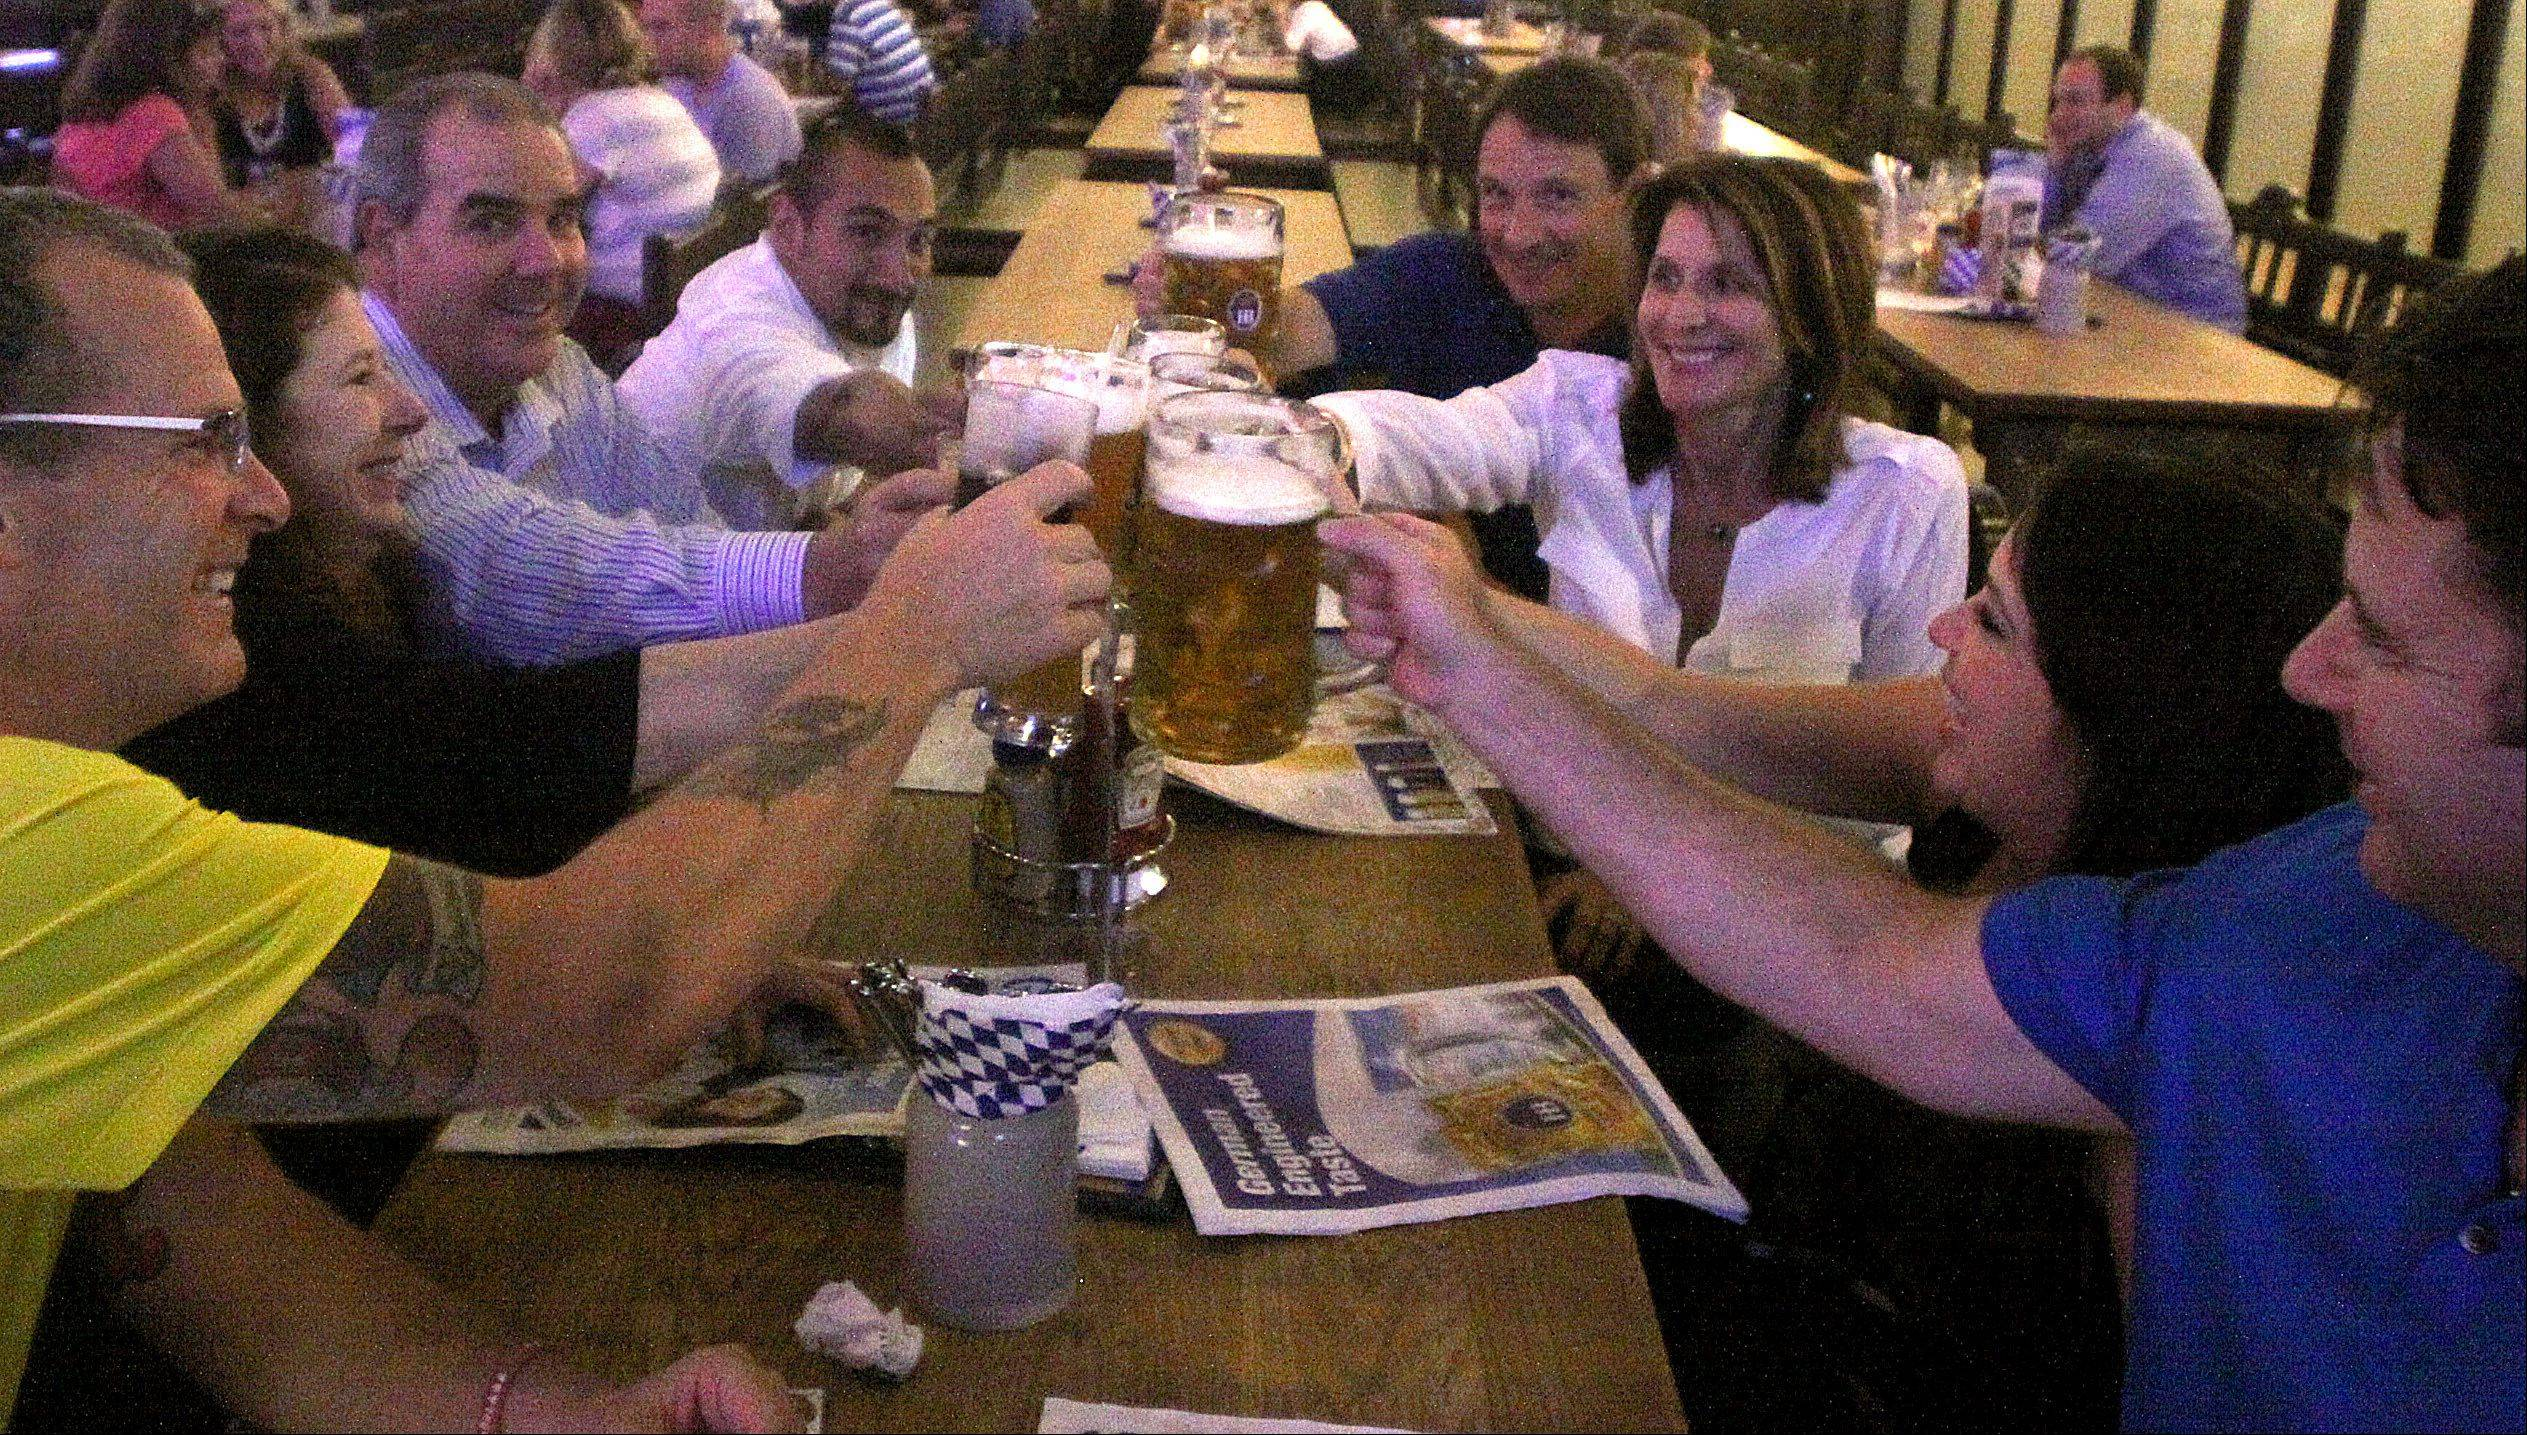 A group of patrons share a toast with their steins of beer at Hofbräuhaus Chicago. The Rosemont restaurant is celebrating Oktoberfest through the end of October.